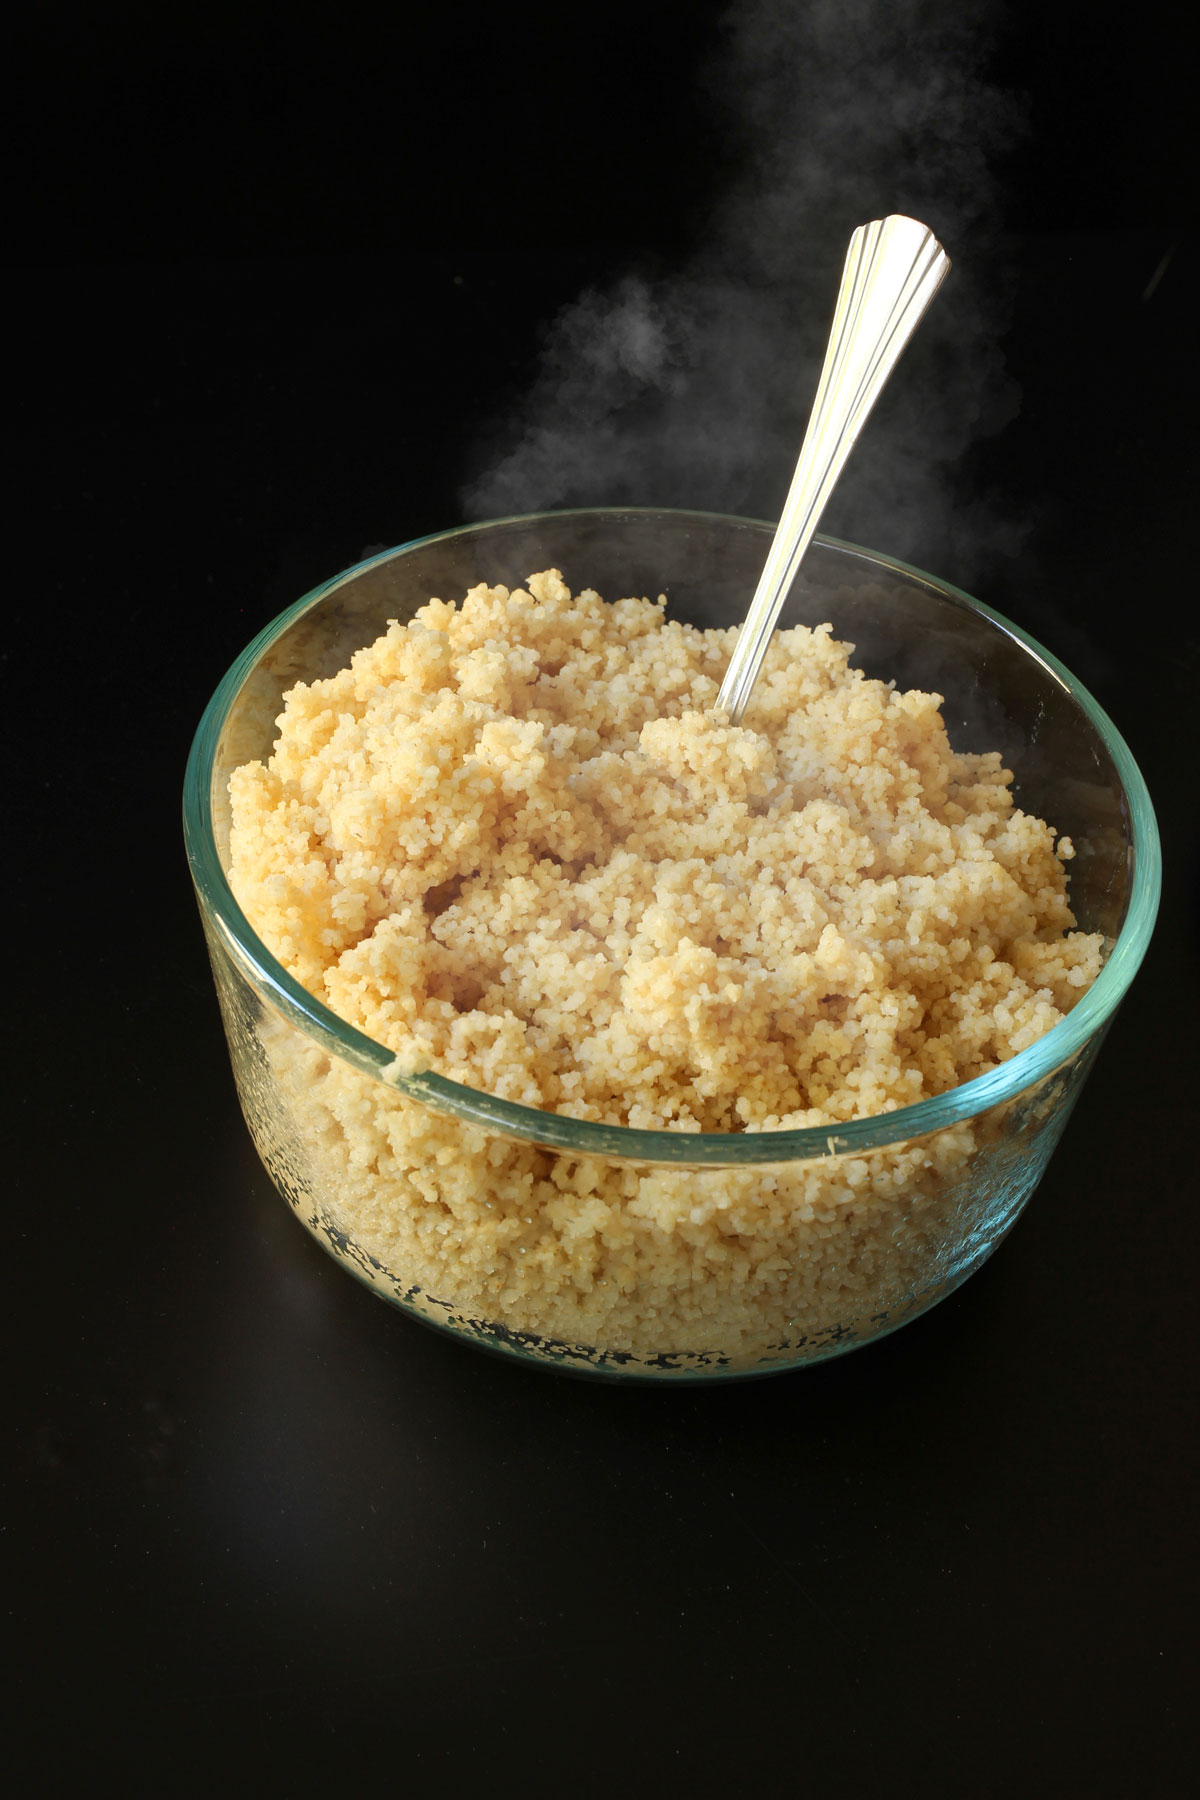 cooked couscous in a glass bowl with a fork.